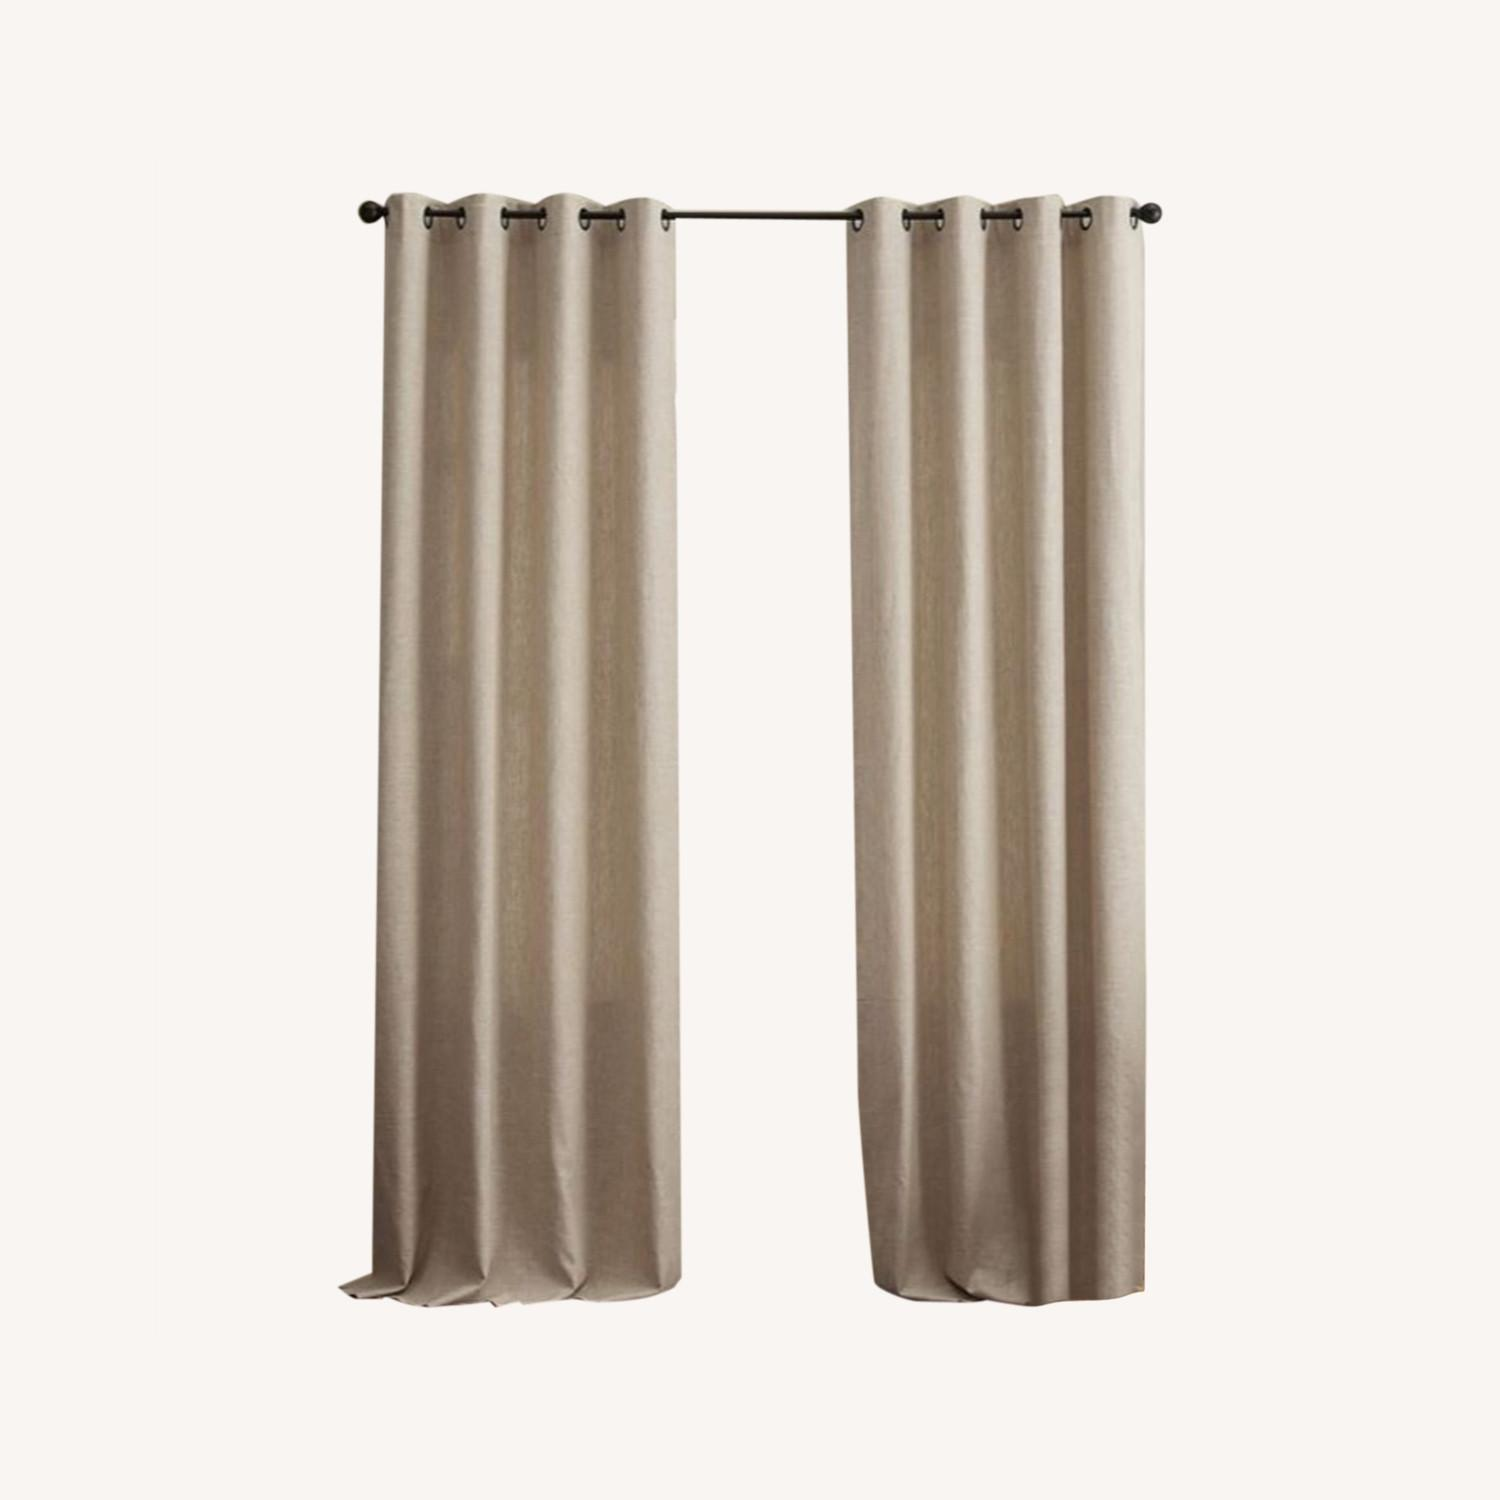 Pottery Barn Linen Curtains with Blackout Liners - image-0